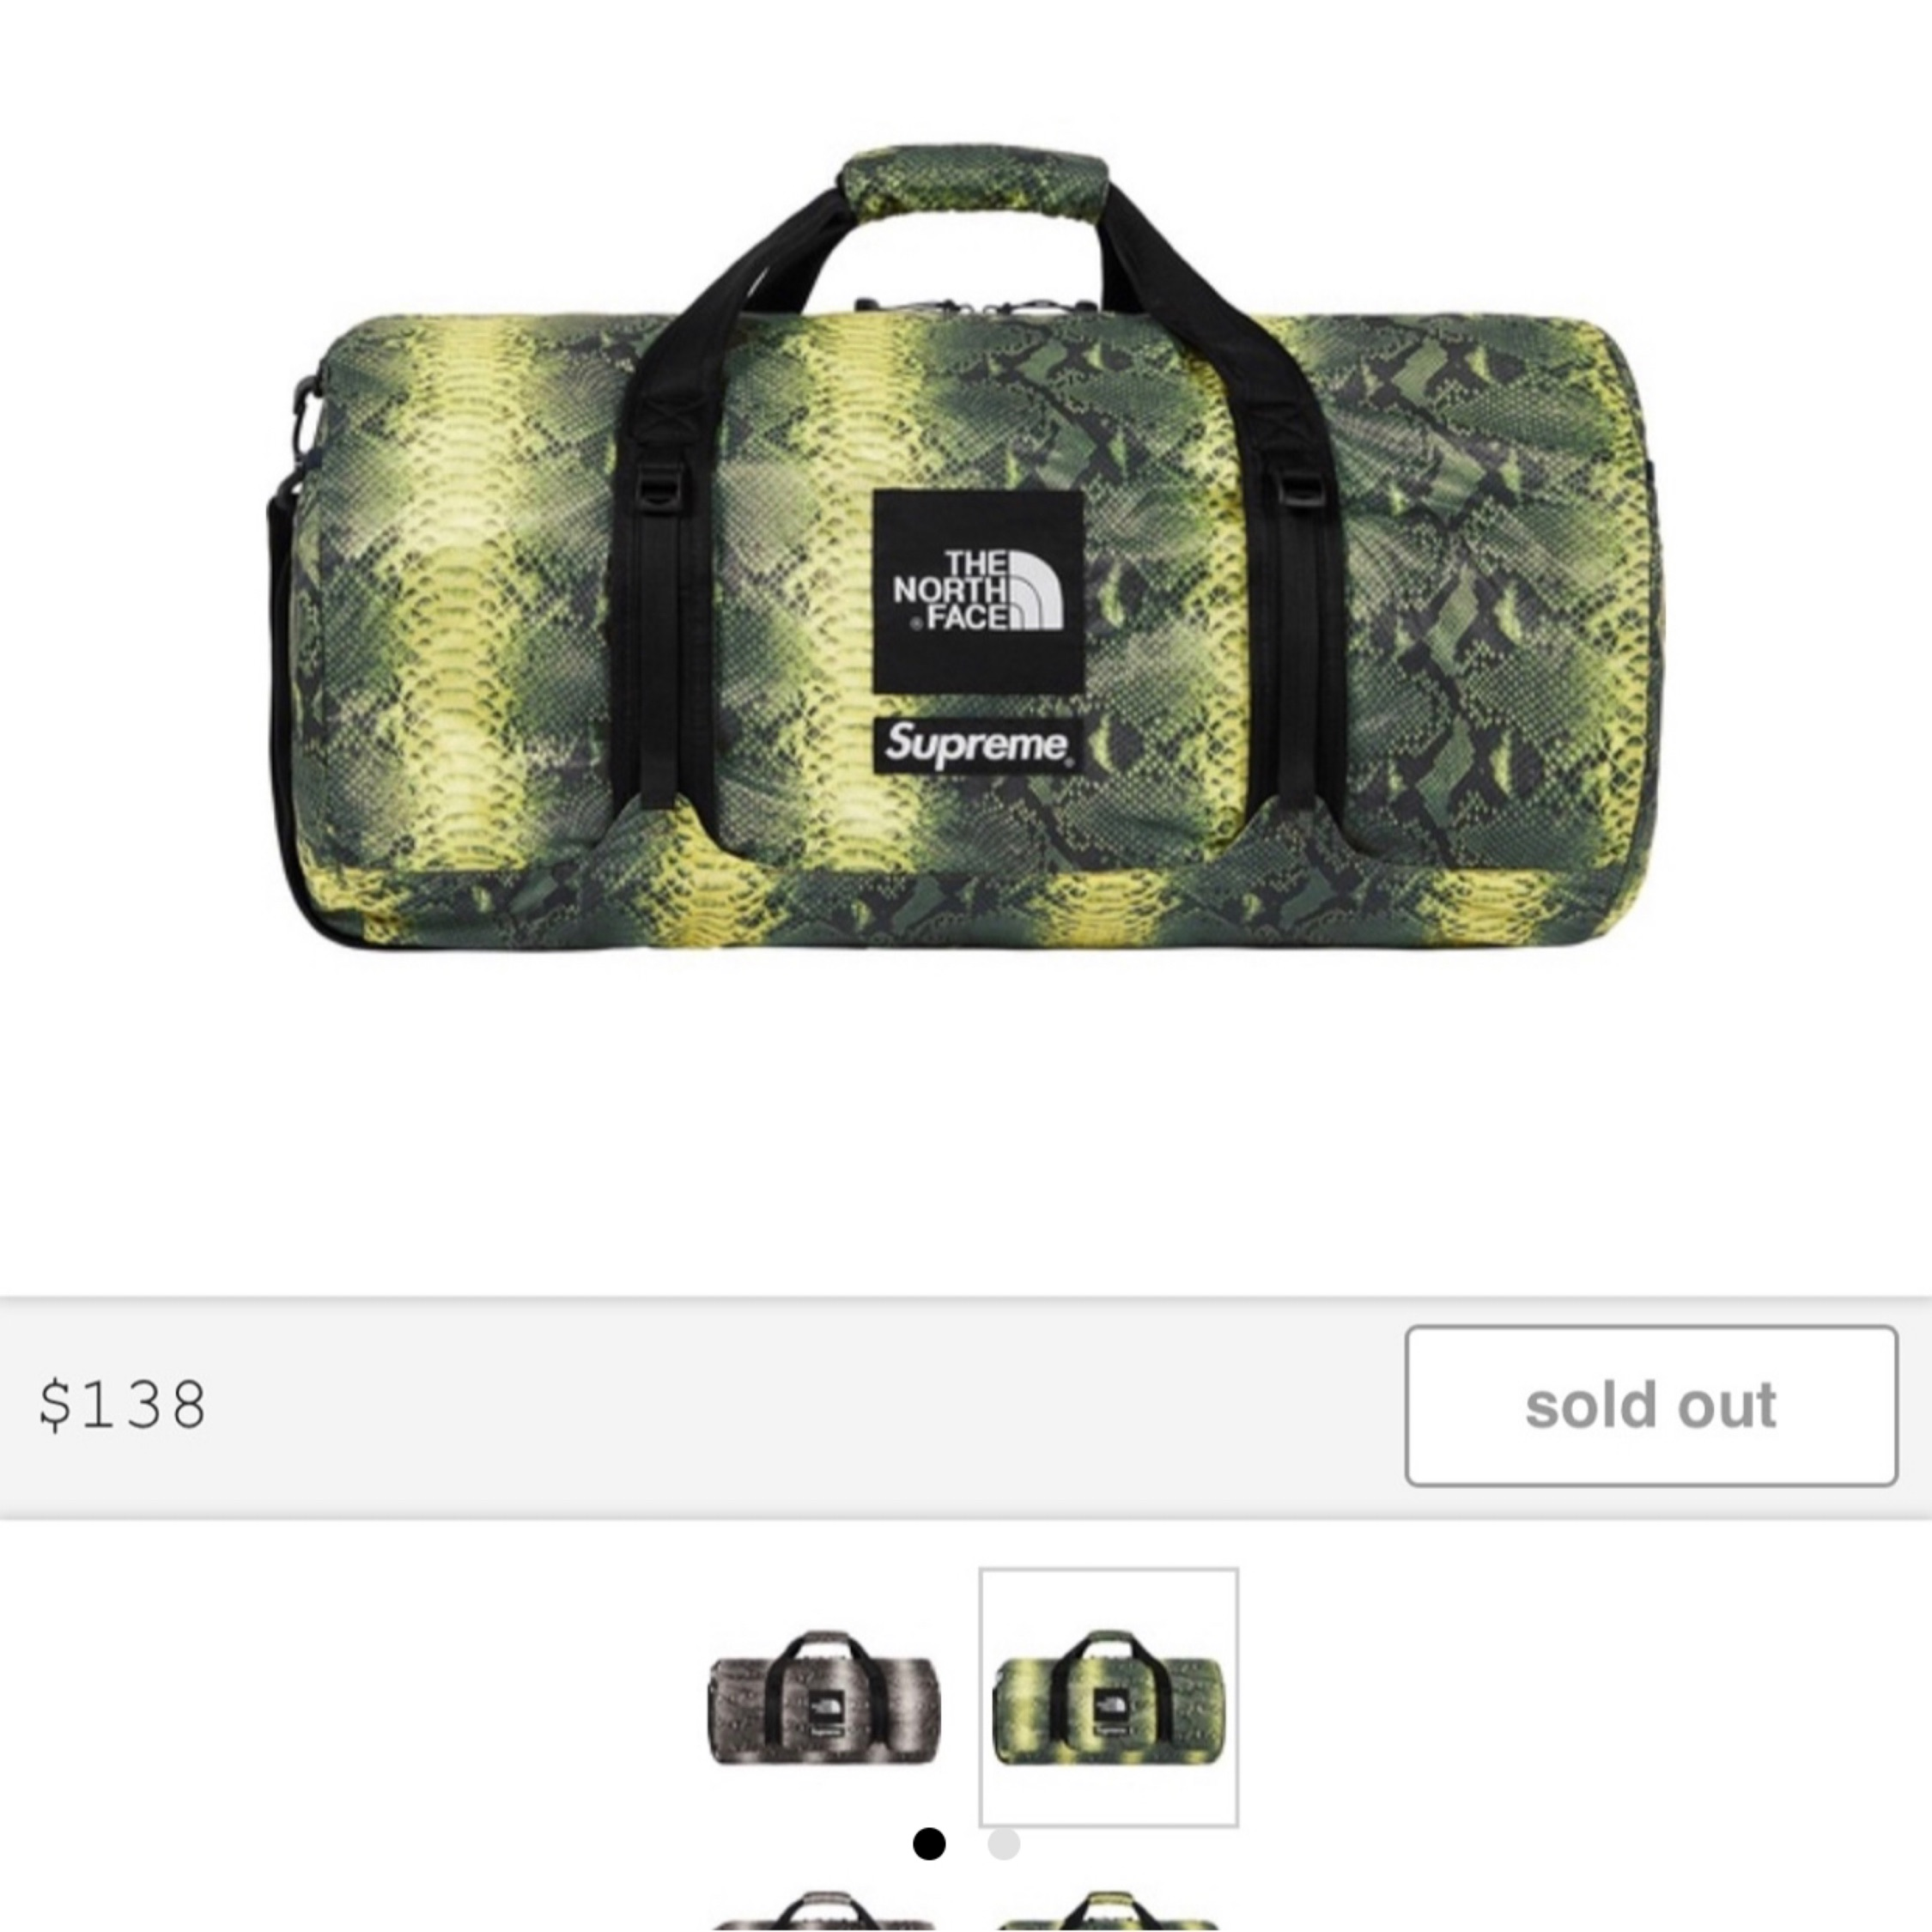 Supreme The North Face Snakeskin Duffle Bag